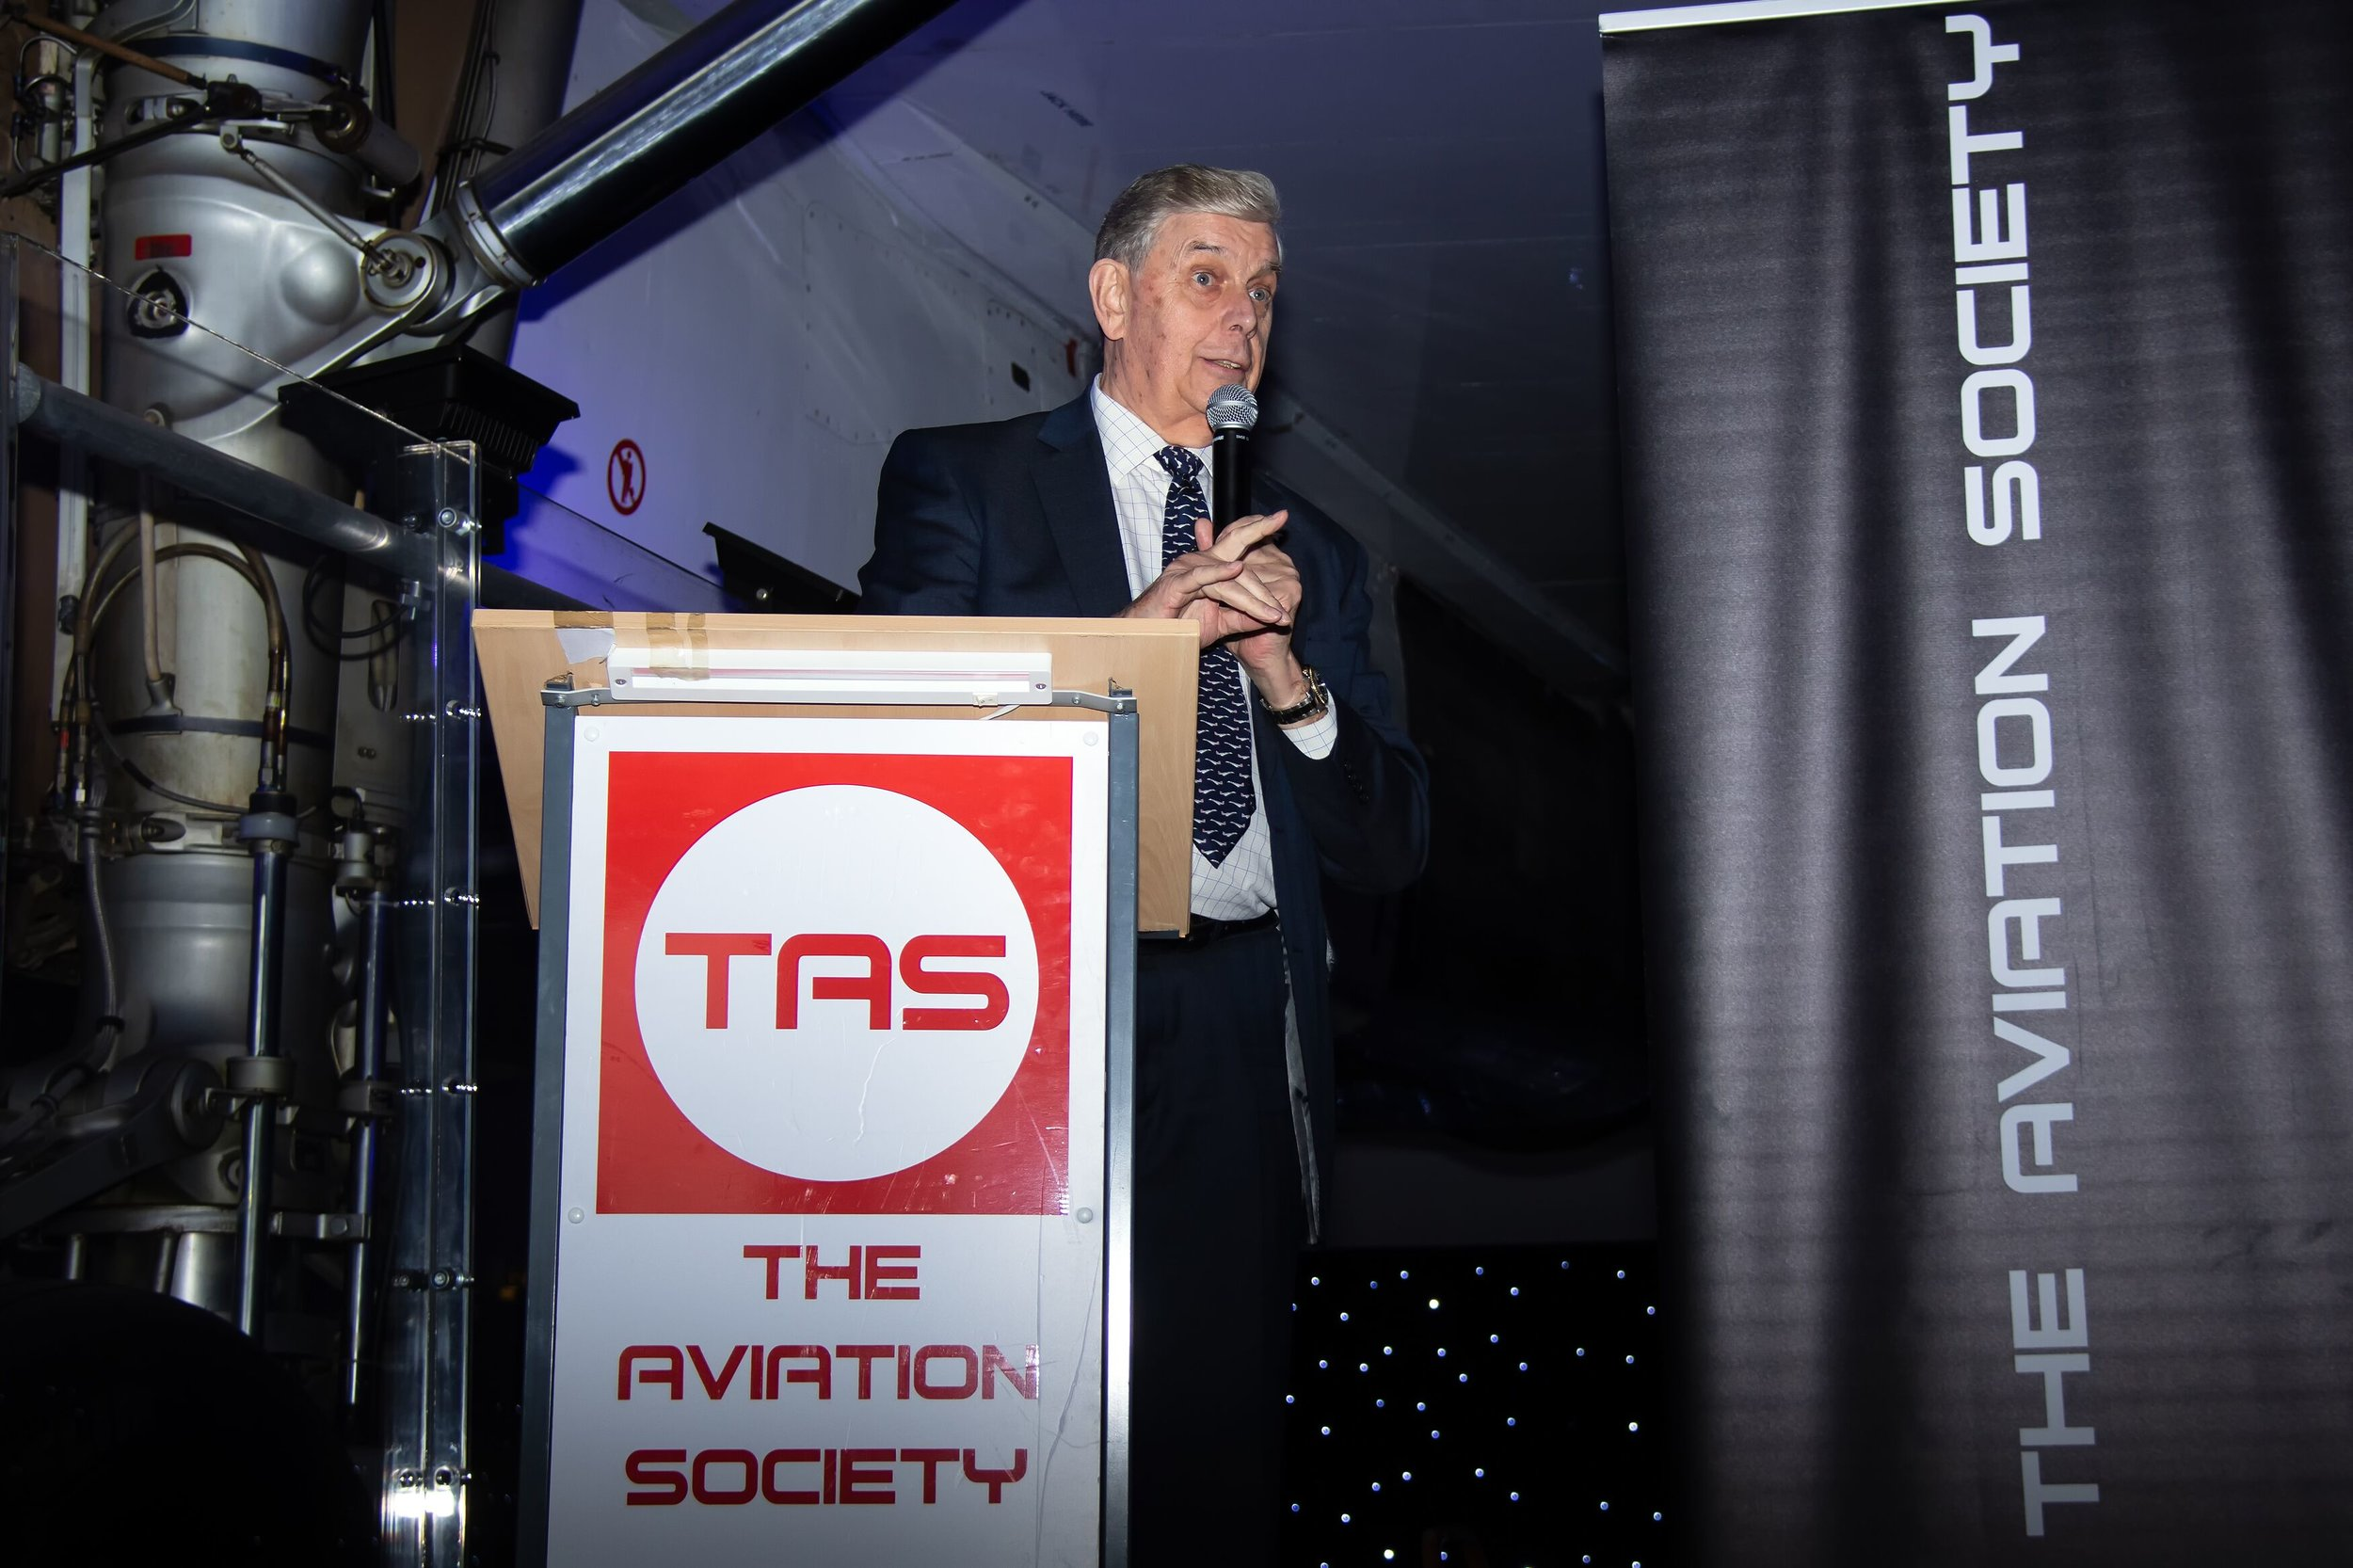 Fred Finn - Guinness Book of records holder as The worlds most travelled man and Concorde's most frequent flyer (Over 700 flights on Concorde) delivered a superb speech and answered questions from our audience…